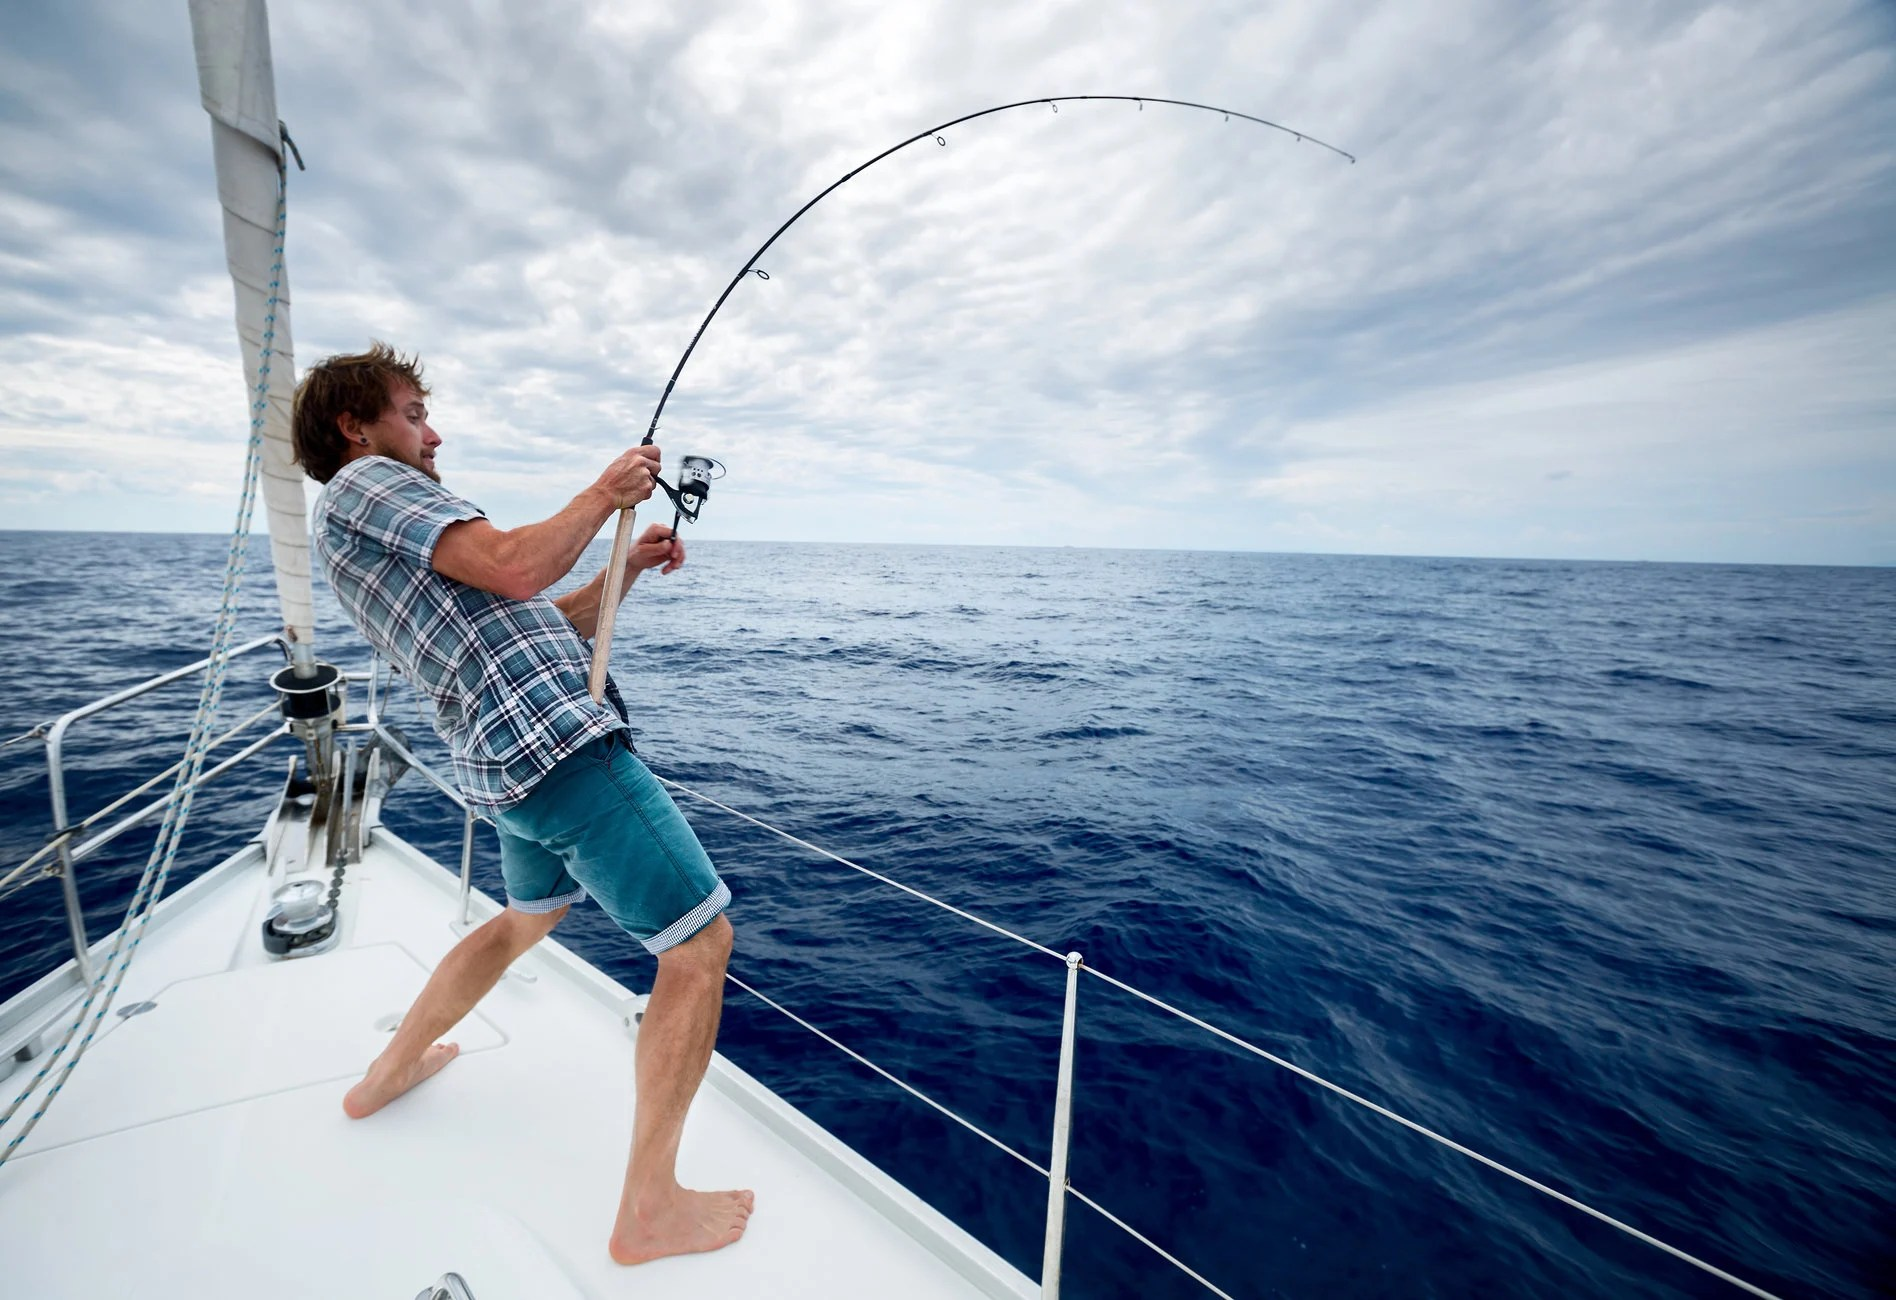 an angler holding a bent fishing rod on a boat